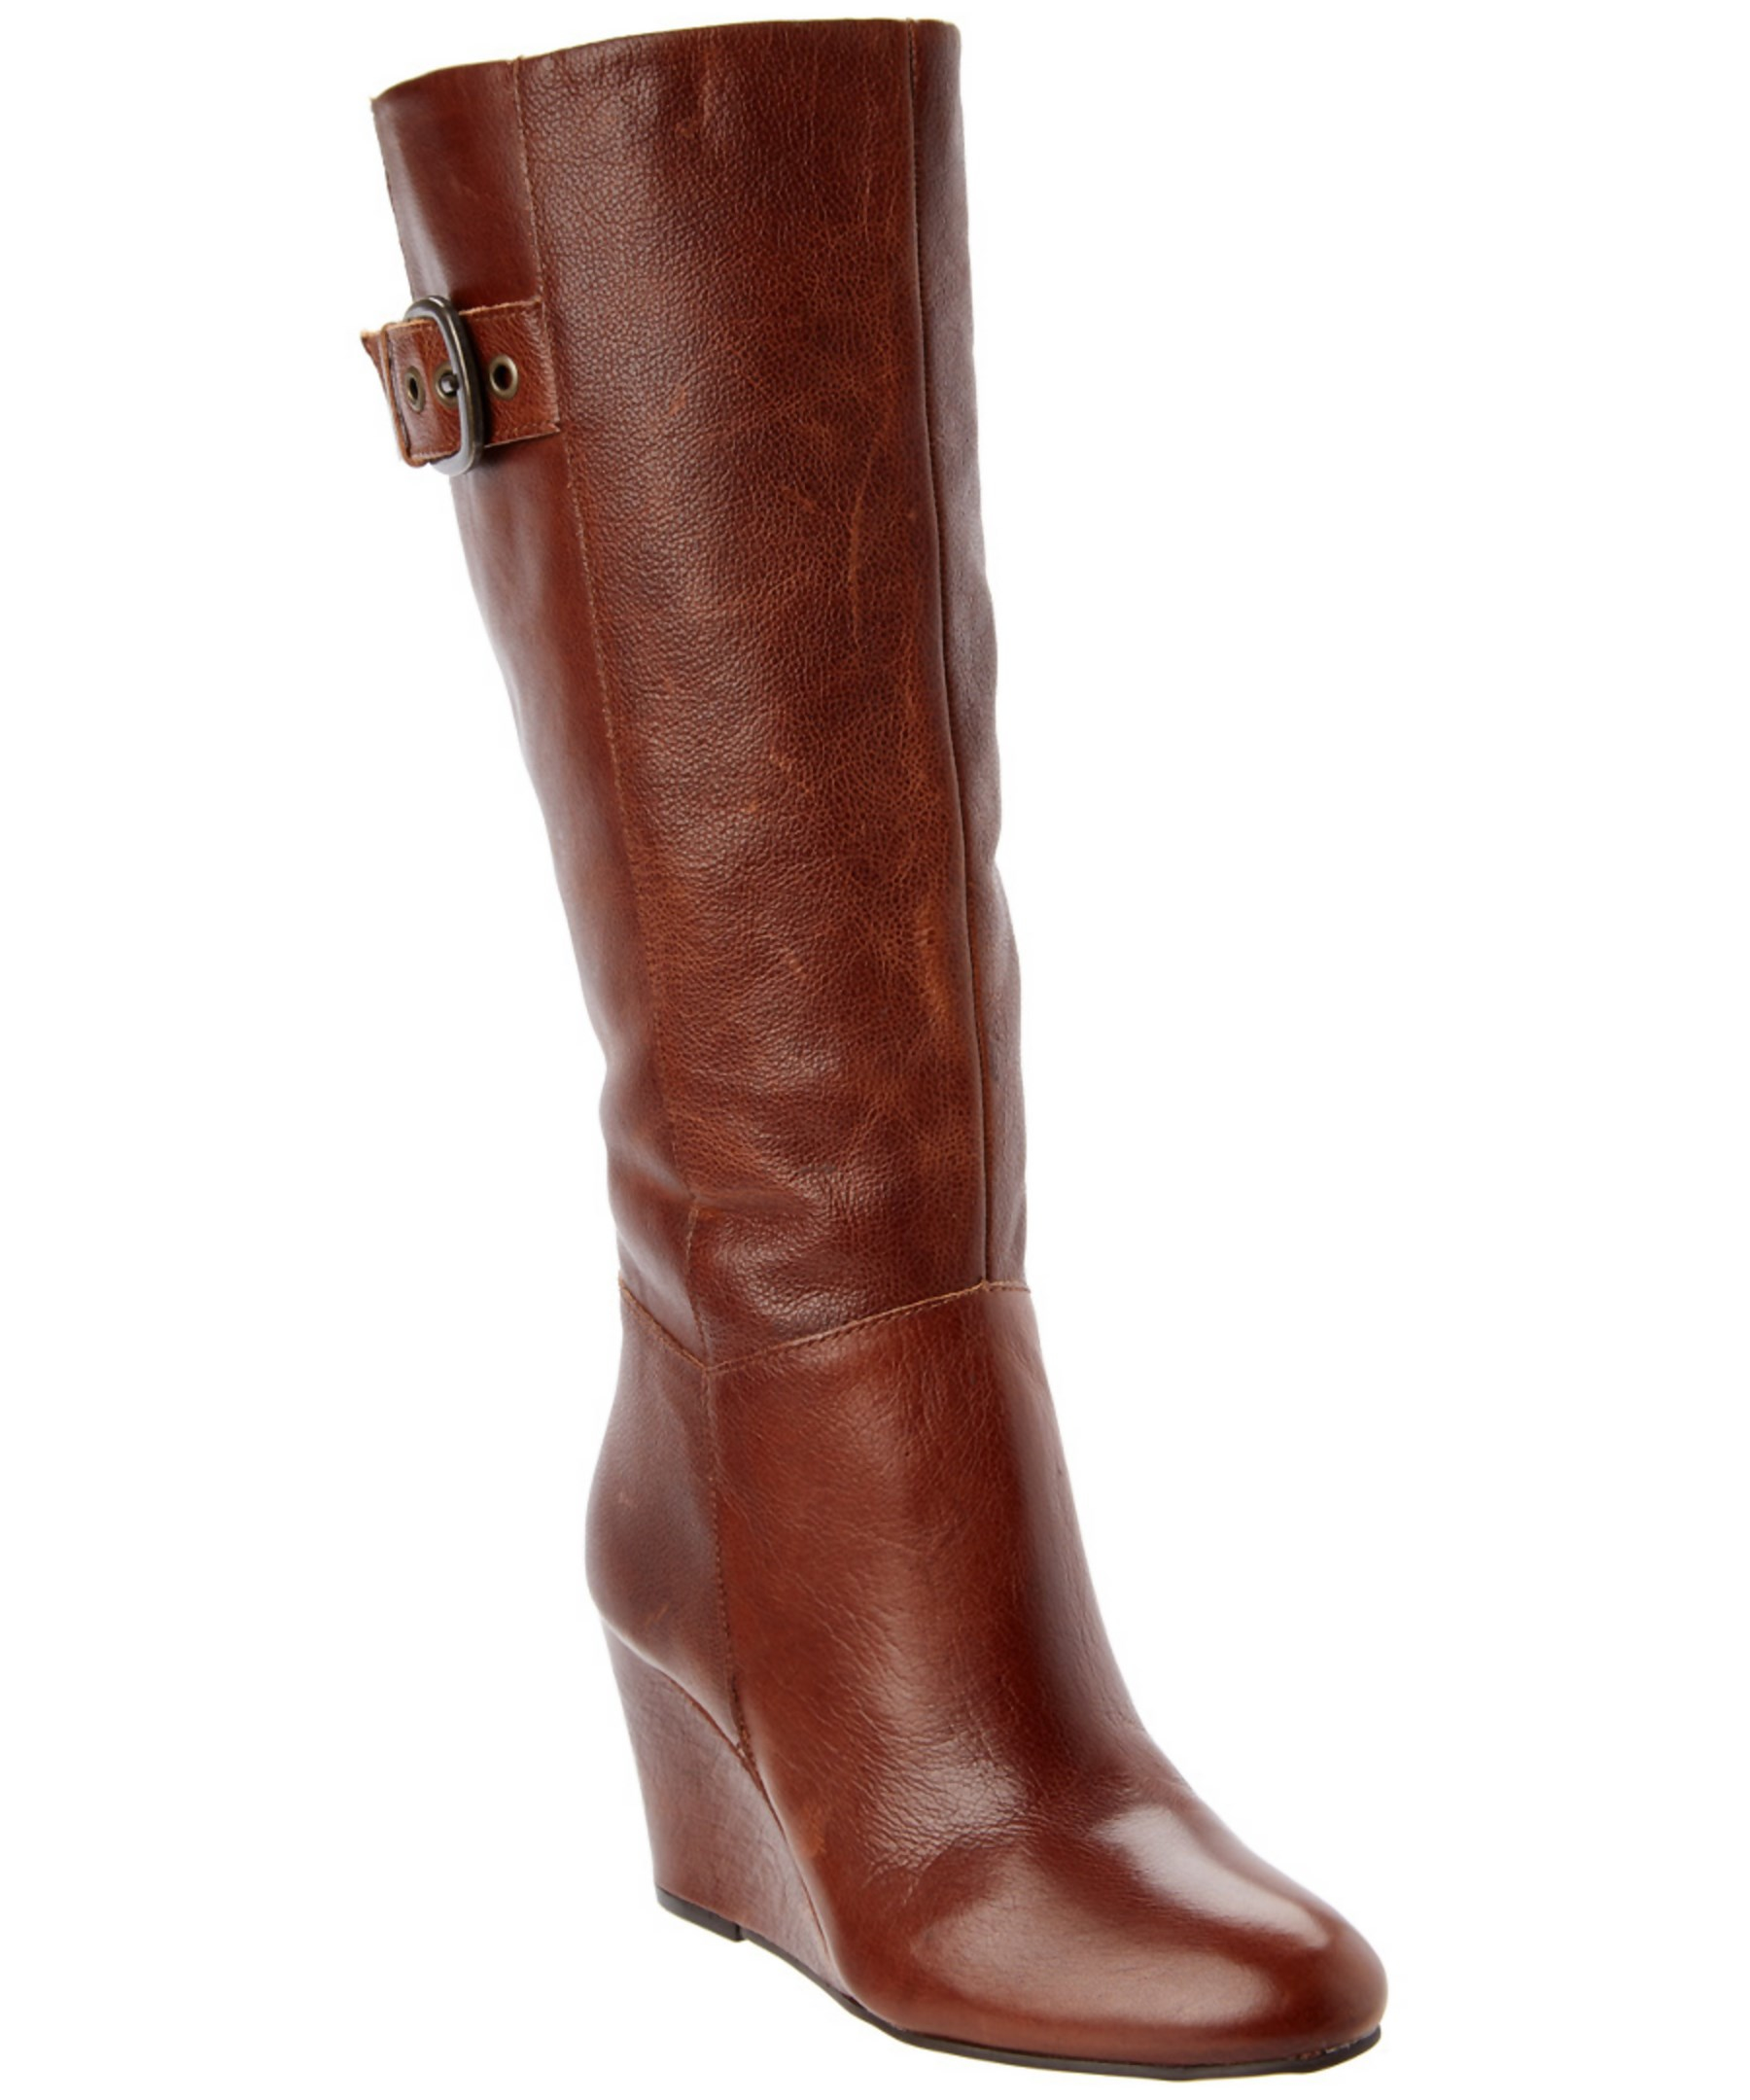 steven by steve madden matik leather wedge boot in brown